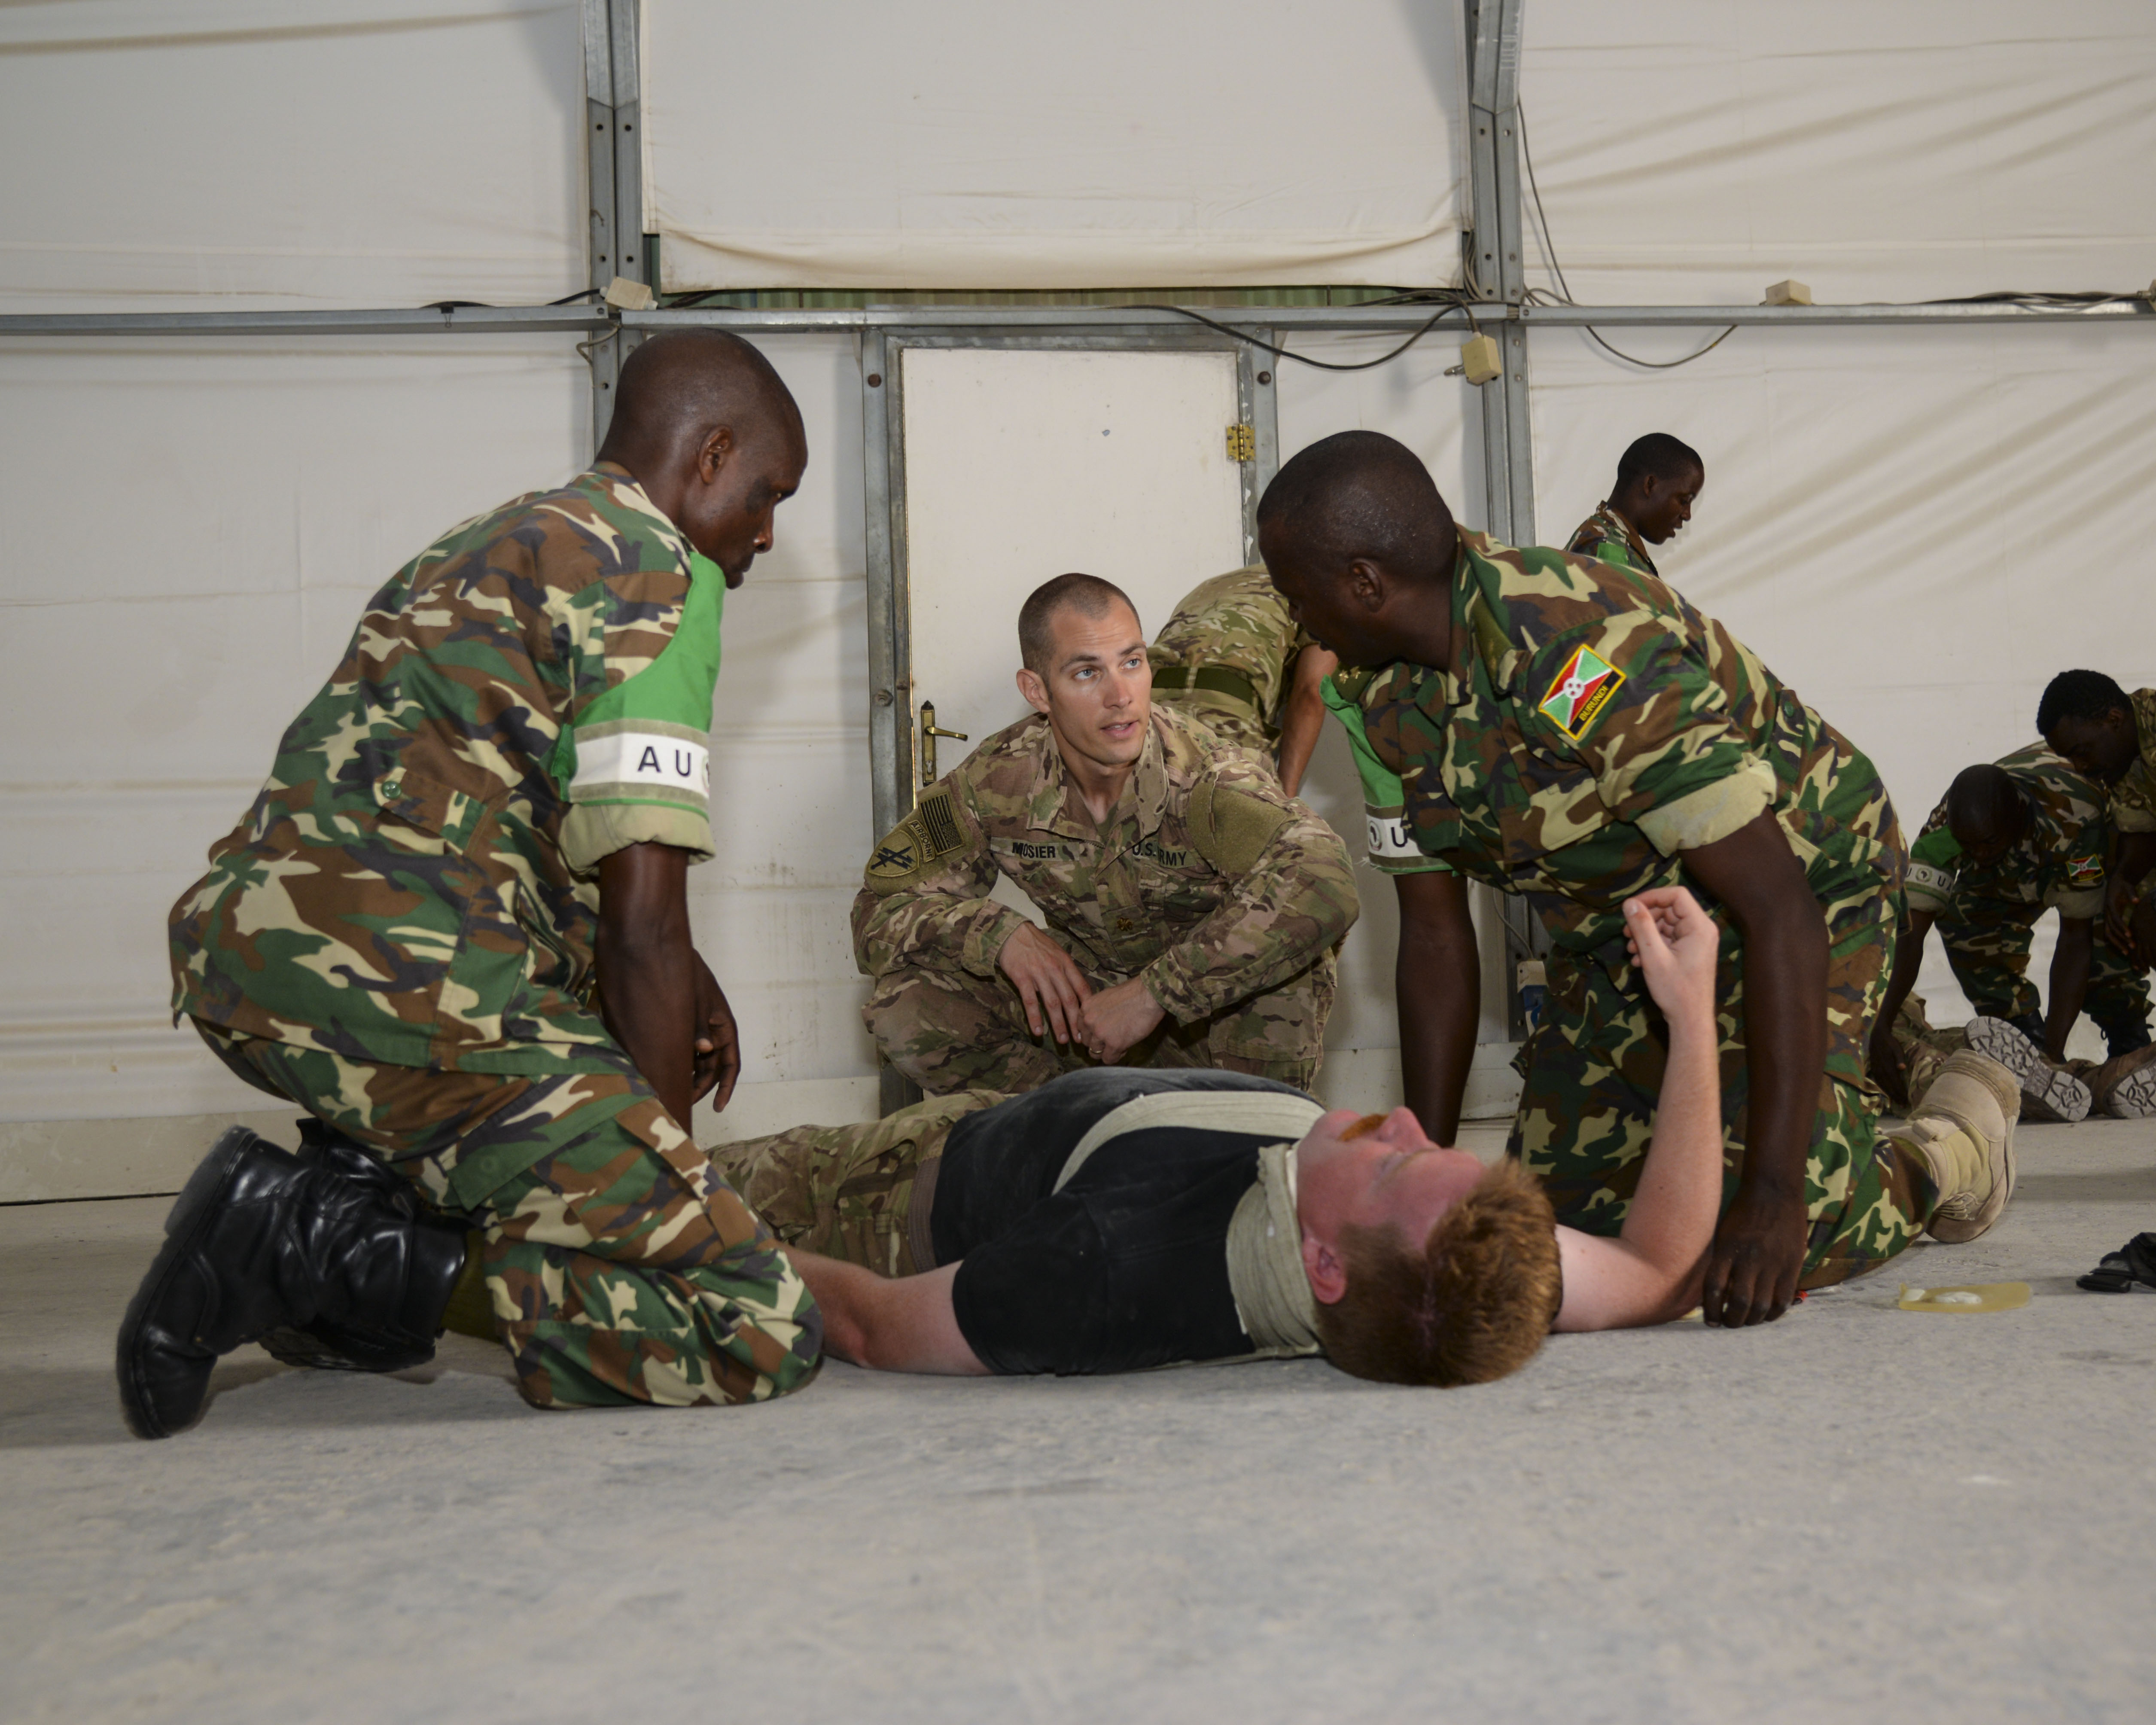 U.S. Army Maj. Andrew Mosier, 403rd Civil Affairs Battalion physician, center, shares medical practices with African Union Mission in Somalia medics during a mass casualty exercise, in Mogadishu, Somalia, Sept. 6, 2016. During the exercise, AMISOM and Somali medics worked as teams to treat life-threatening injuries such as severe blood loss and bullet wounds. (U.S. Air Force photo by Staff Sgt. Benjamin Raughton)